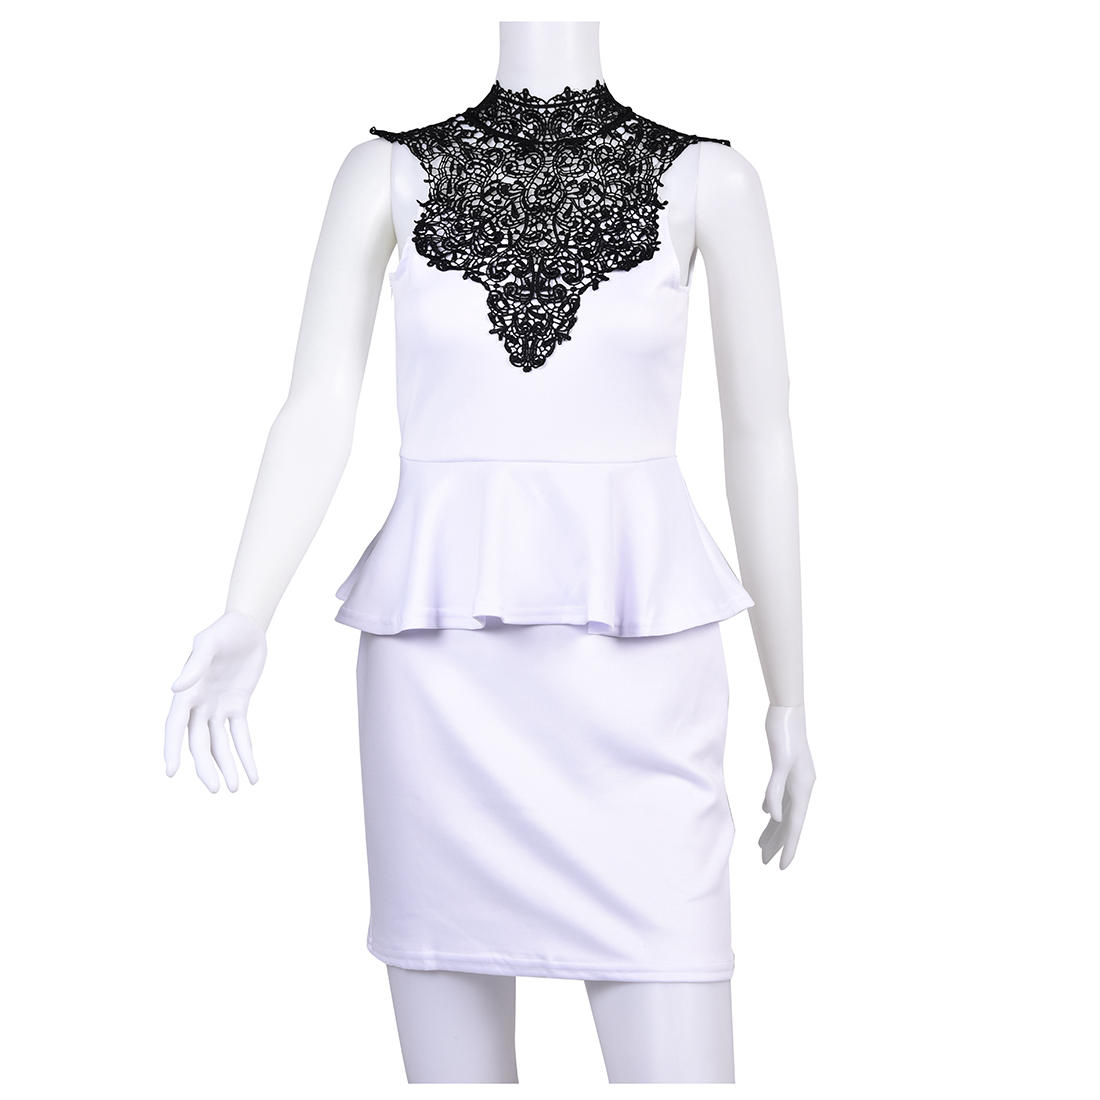 Lace-Dress-Lace-High-Necked-Lady-Clothes-Sleeveless-White-M-Q6F3